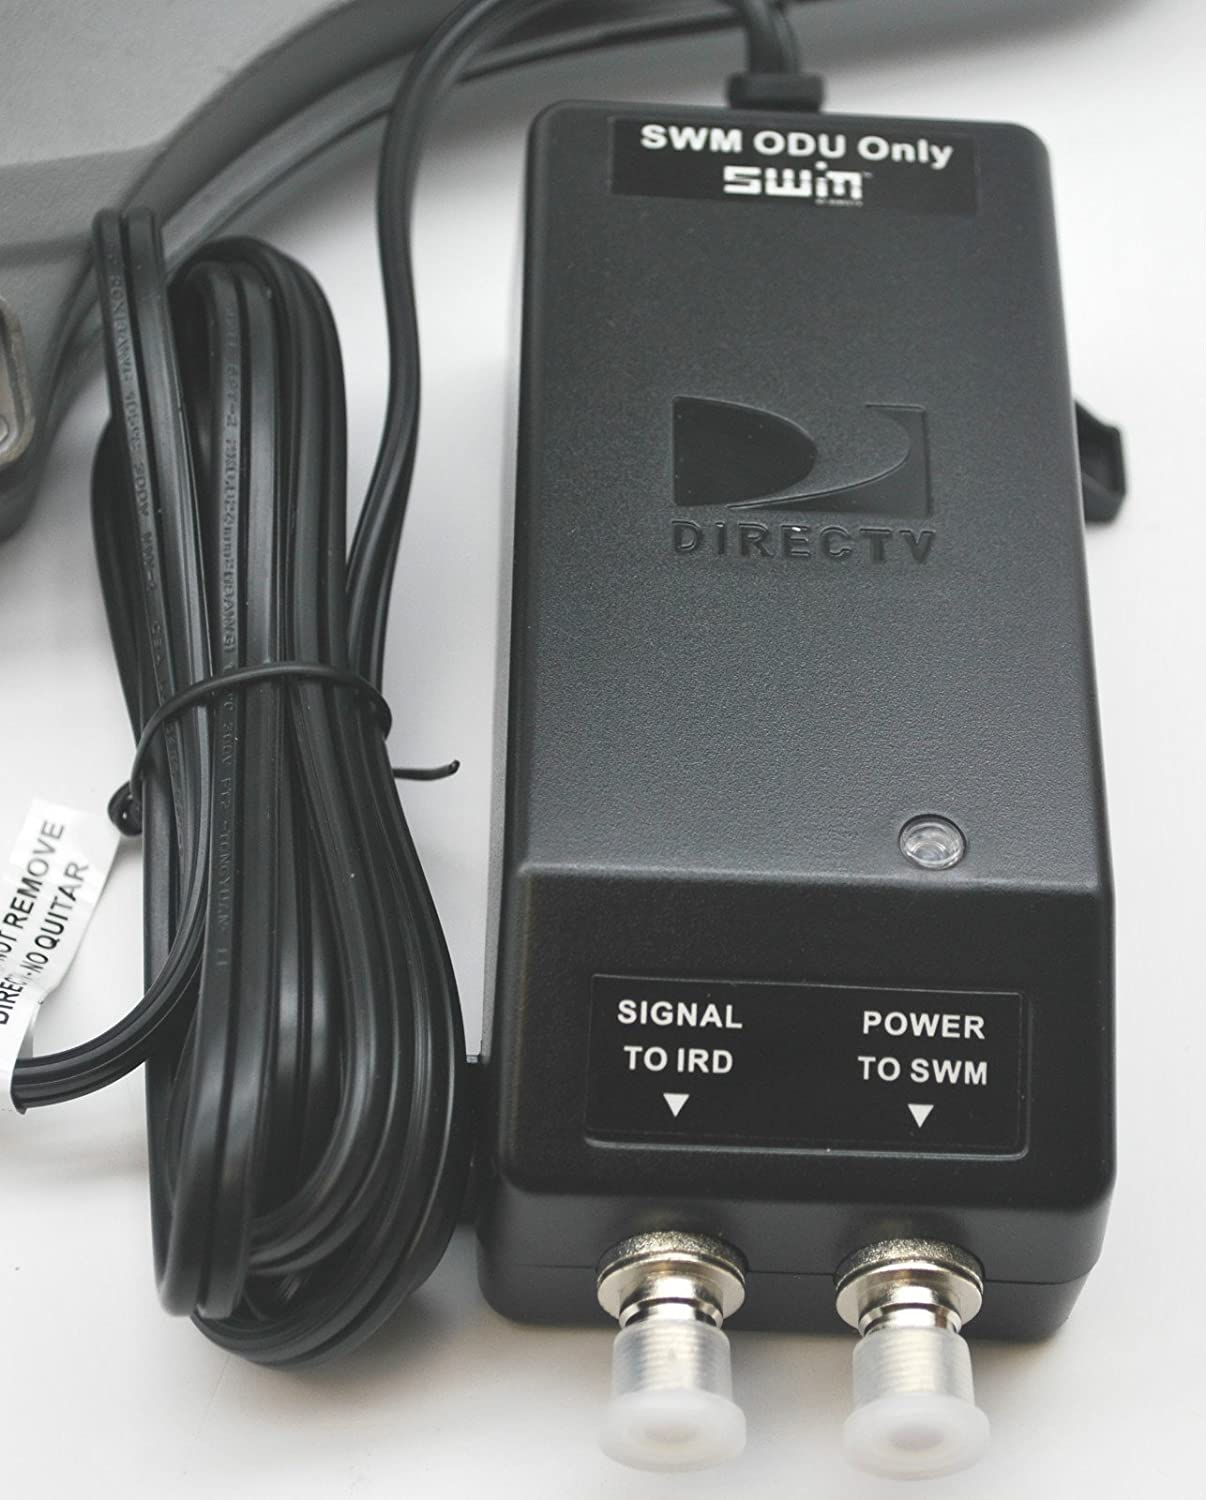 Amazon.com: DIRECTV SWM 5 LNB SLIMLINE KA/KU SL5 MPEG4 HD LNBF W/ POWER  SUPPLY and 8WAY SPLITTER: Home Audio & Theater